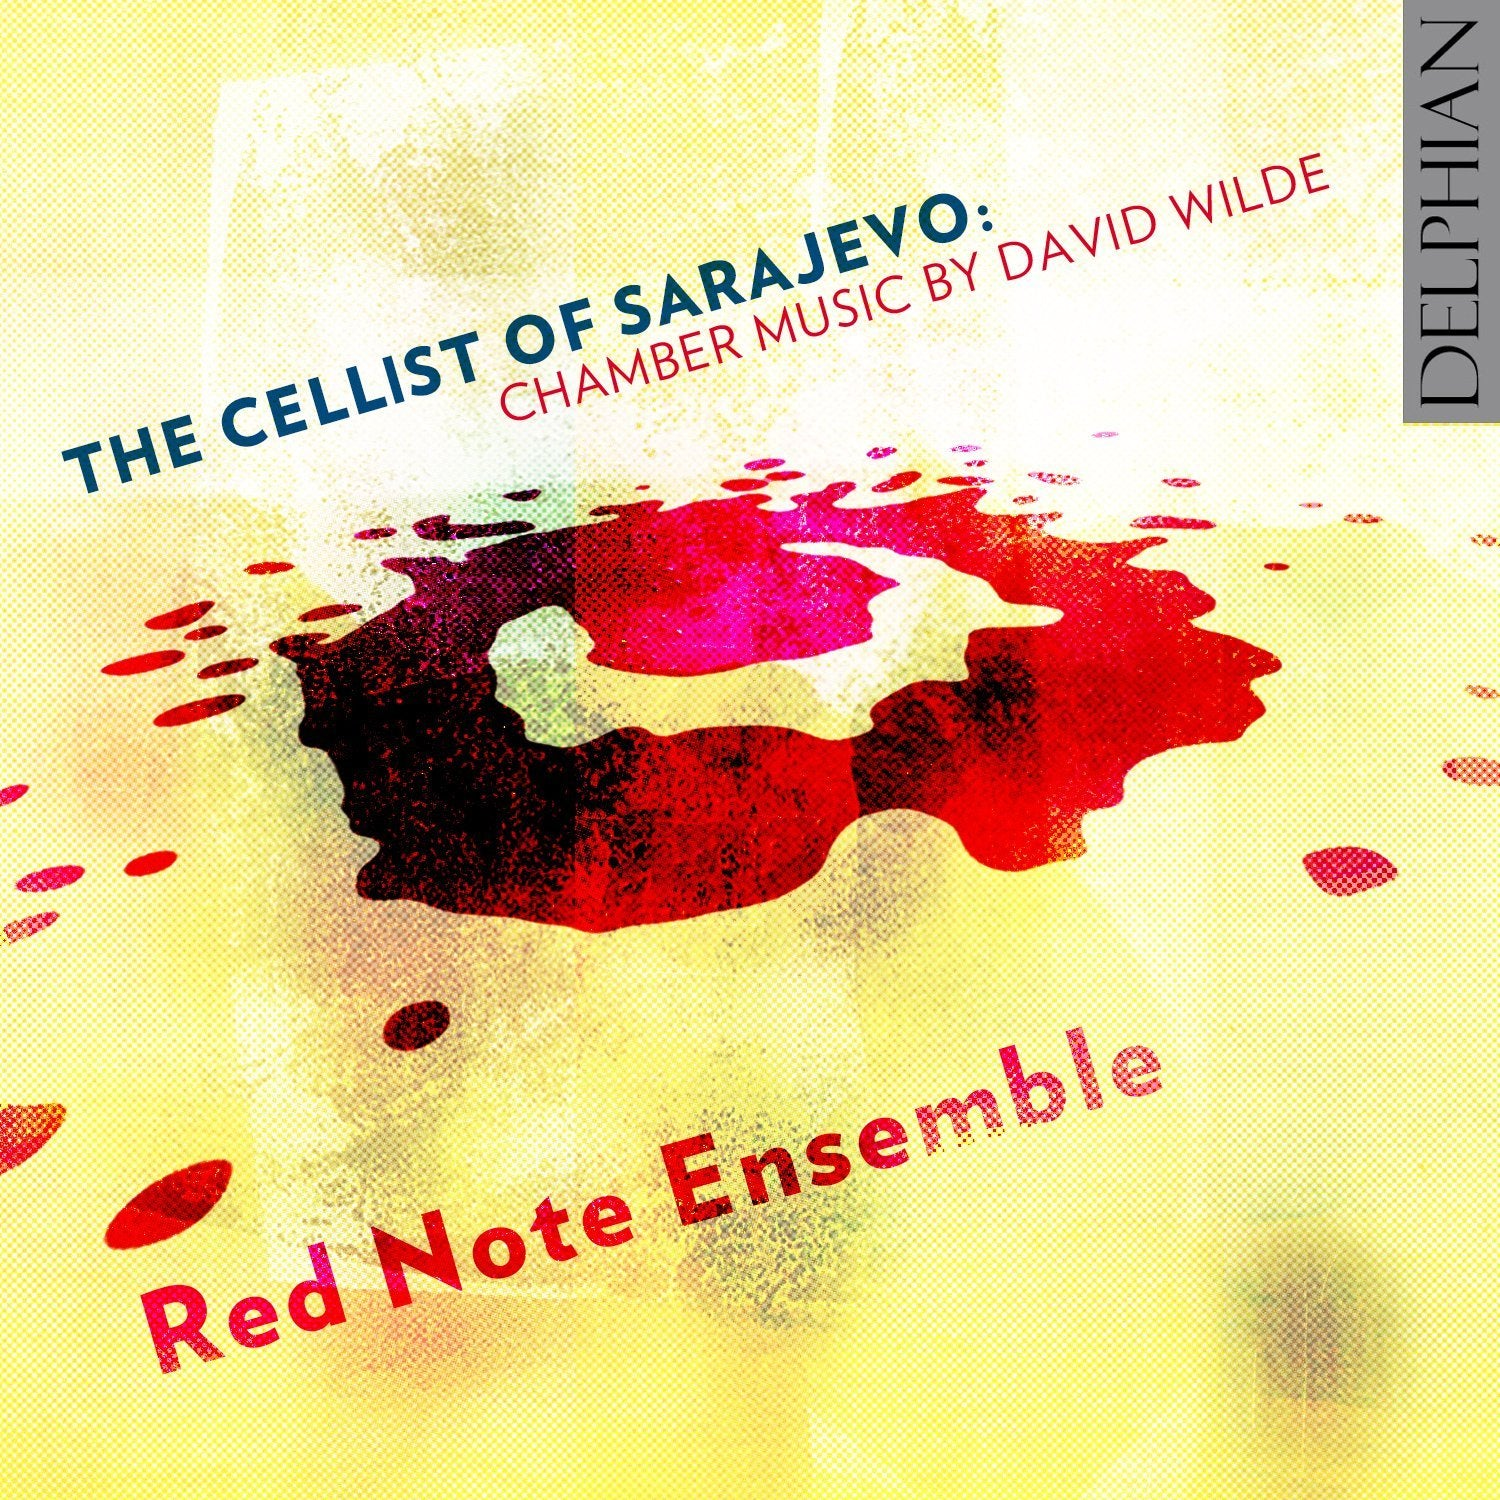 The Cellist of Sarajevo: chamber music by David Wilde CD Delphian Records